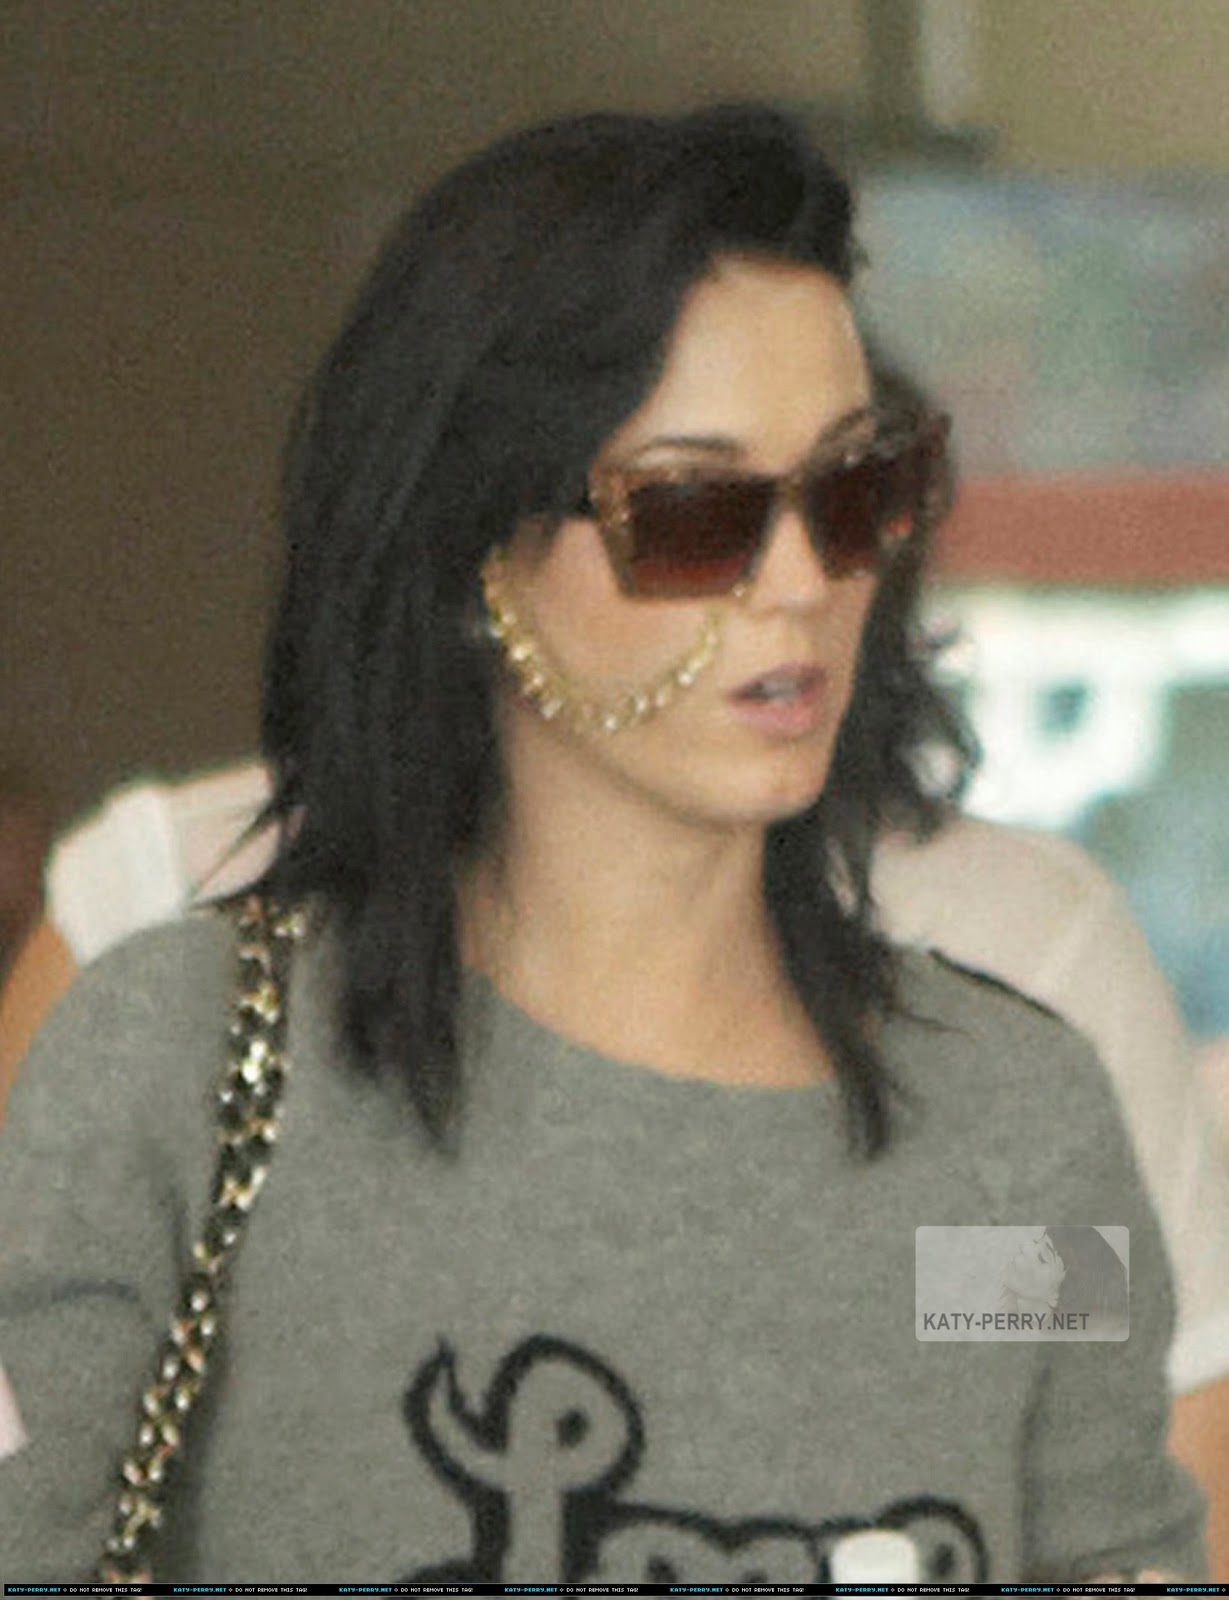 Katy wearing the glasses